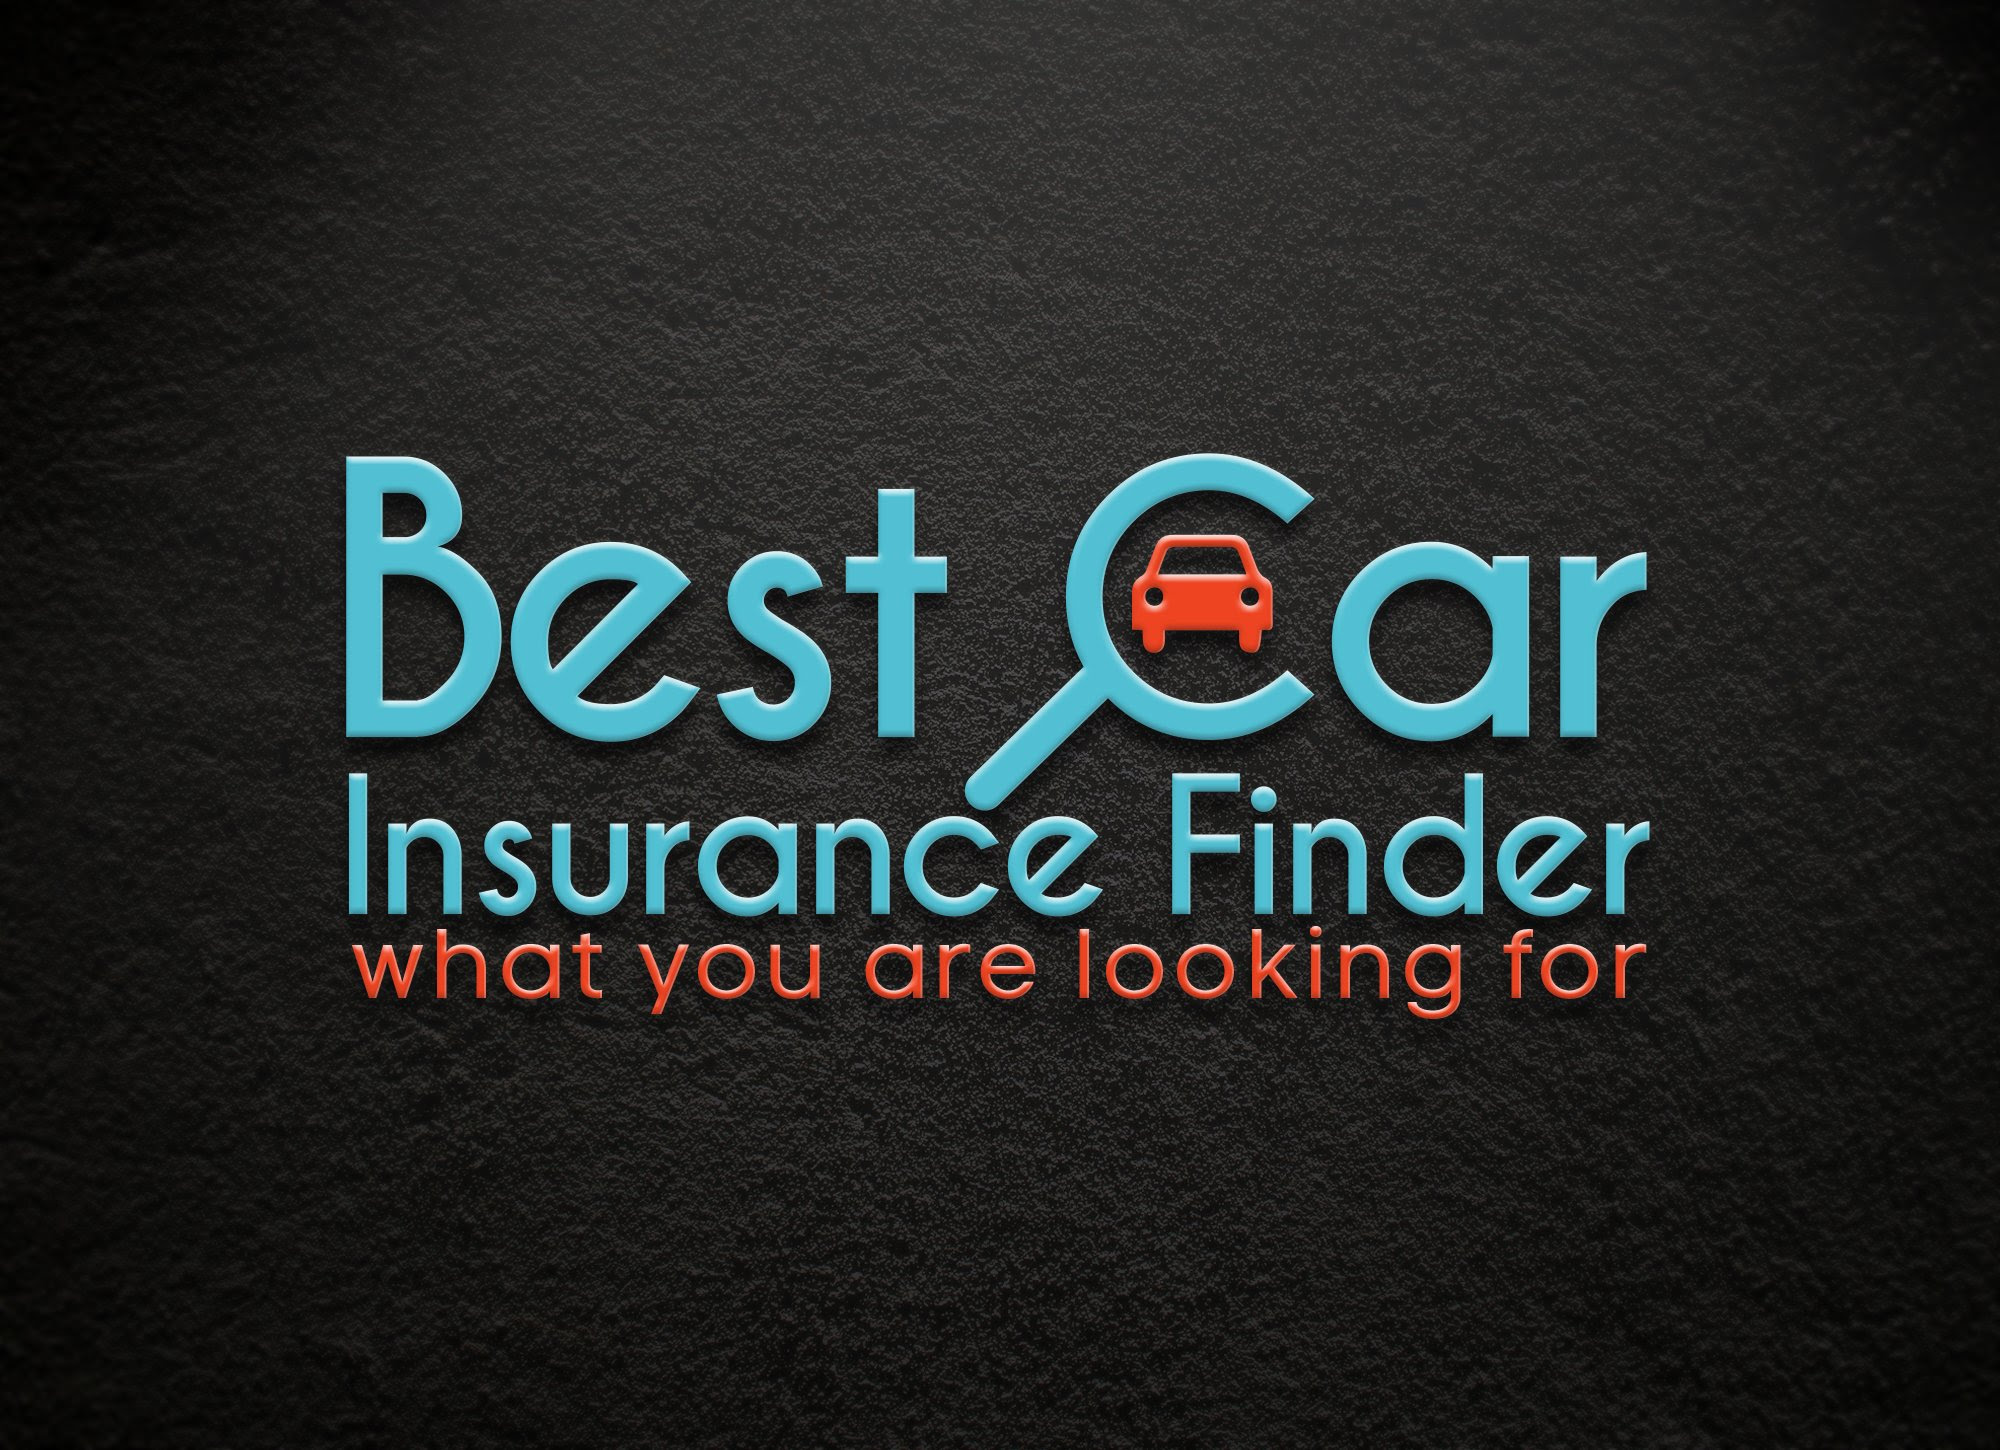 Best Car Insurance Finder - Free Auto Quotes, Compare & Save!